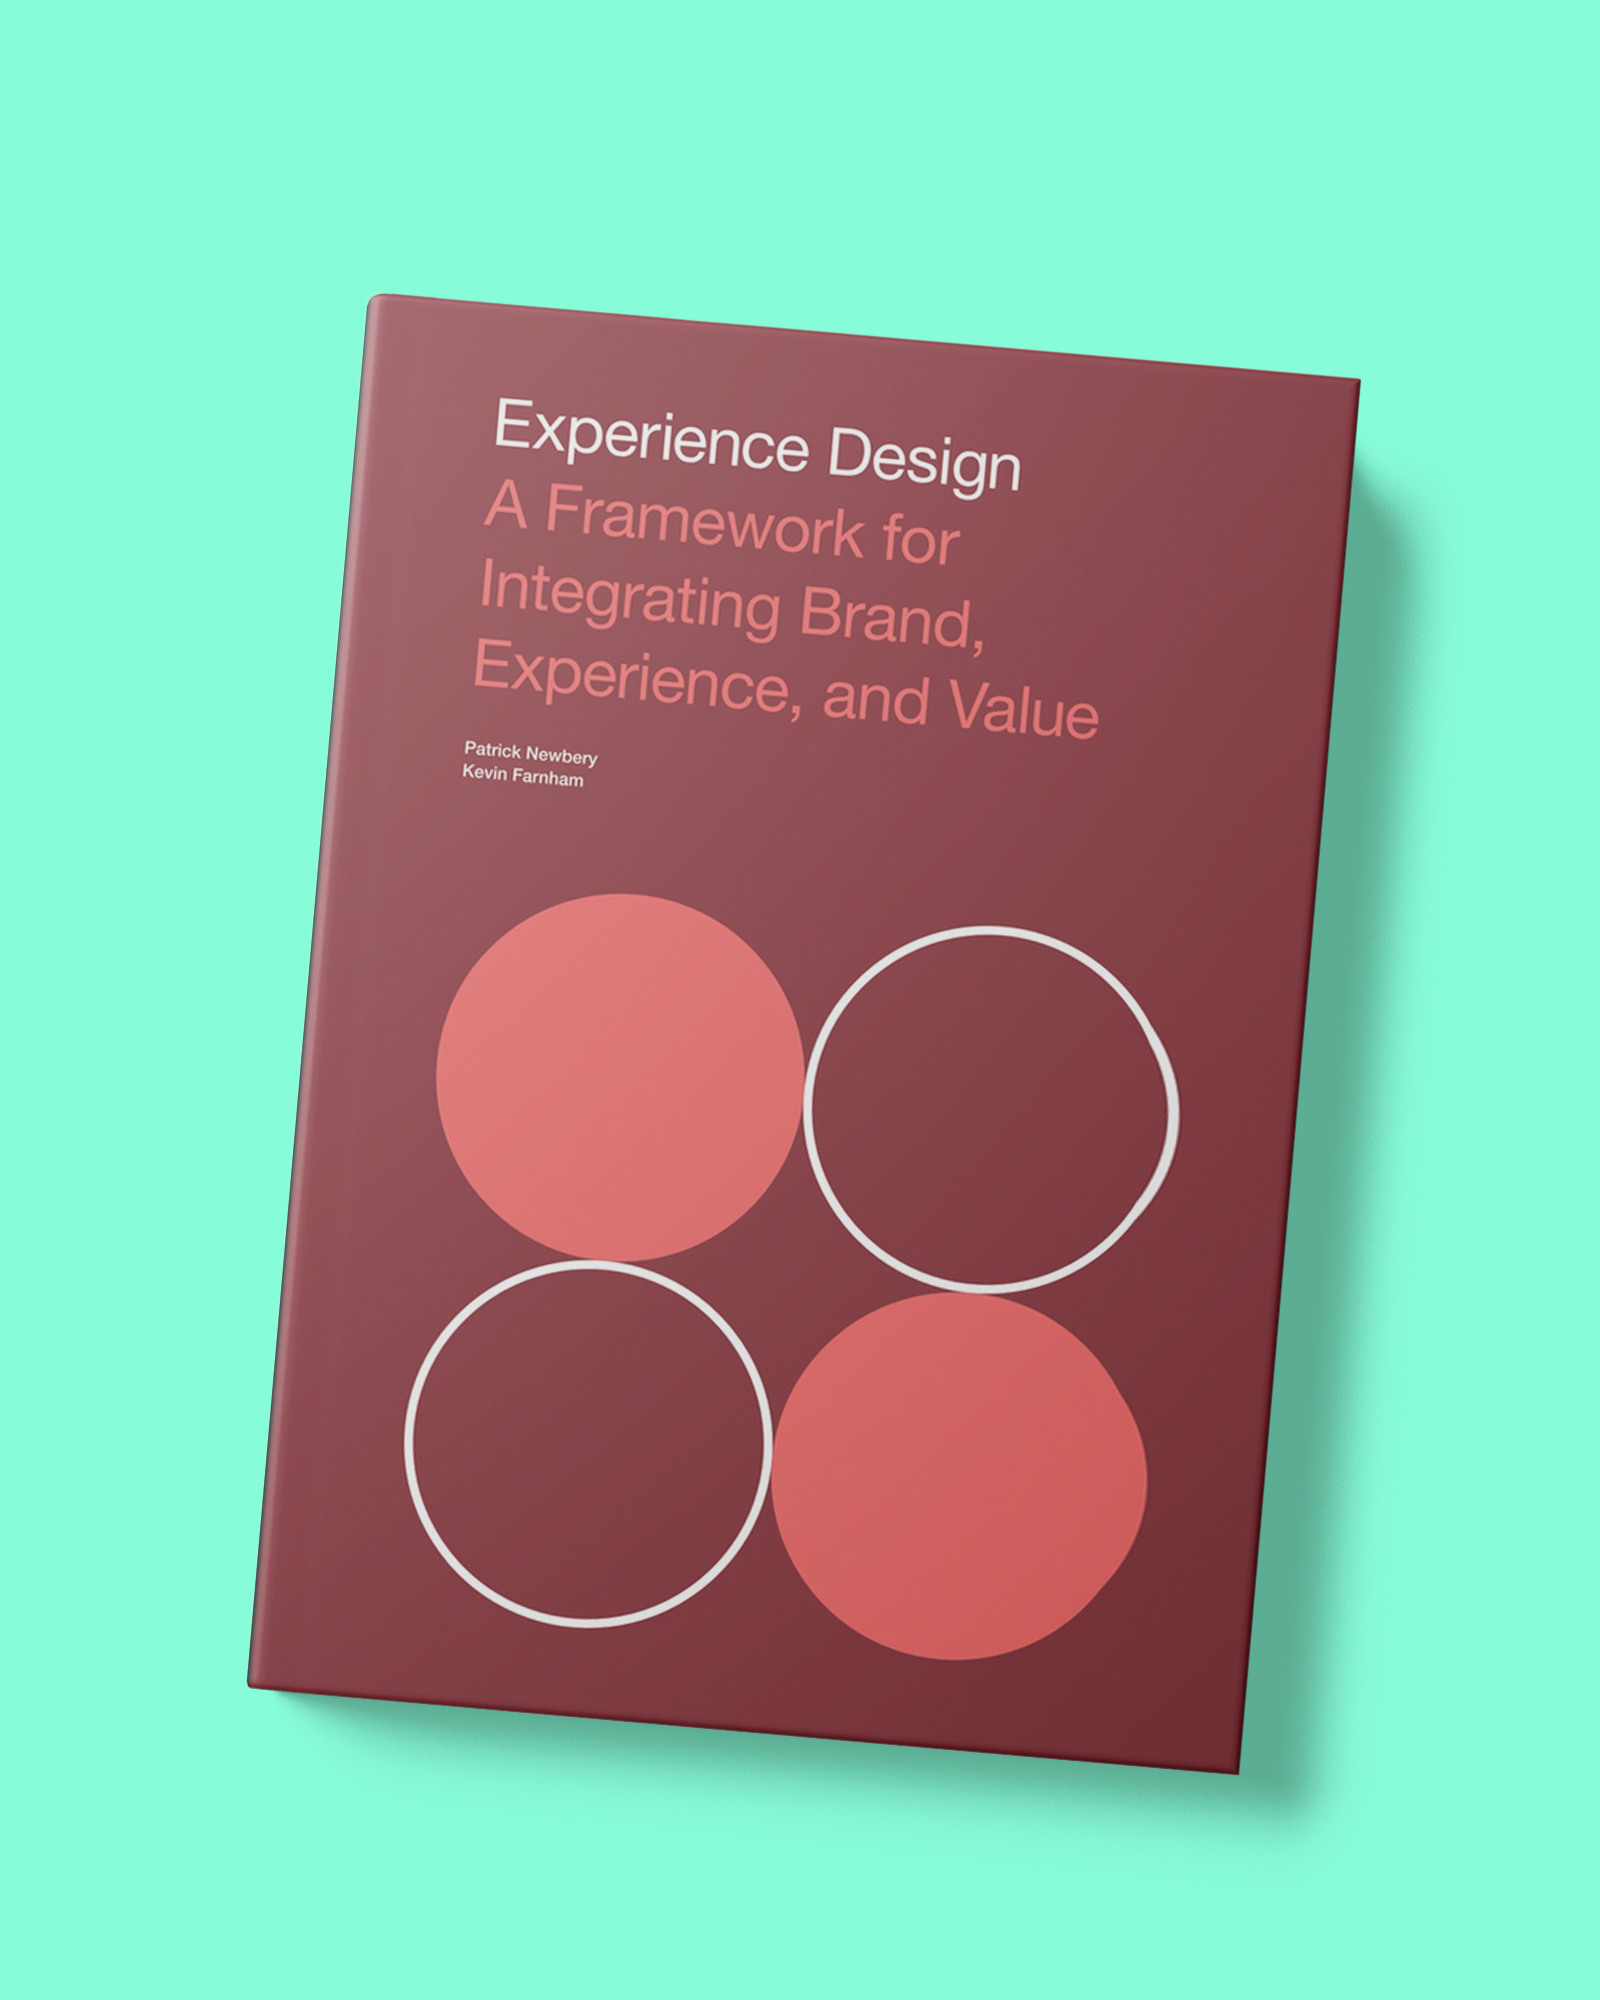 TDC | Behavior design - Book_Experience Design- A Framework for Integrating Brand, Experience, and Value